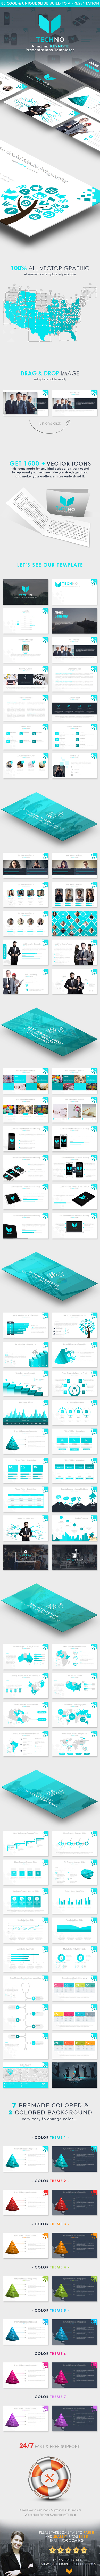 Techno - Multipurpose Keynote Presentation Template - Business Keynote Templates